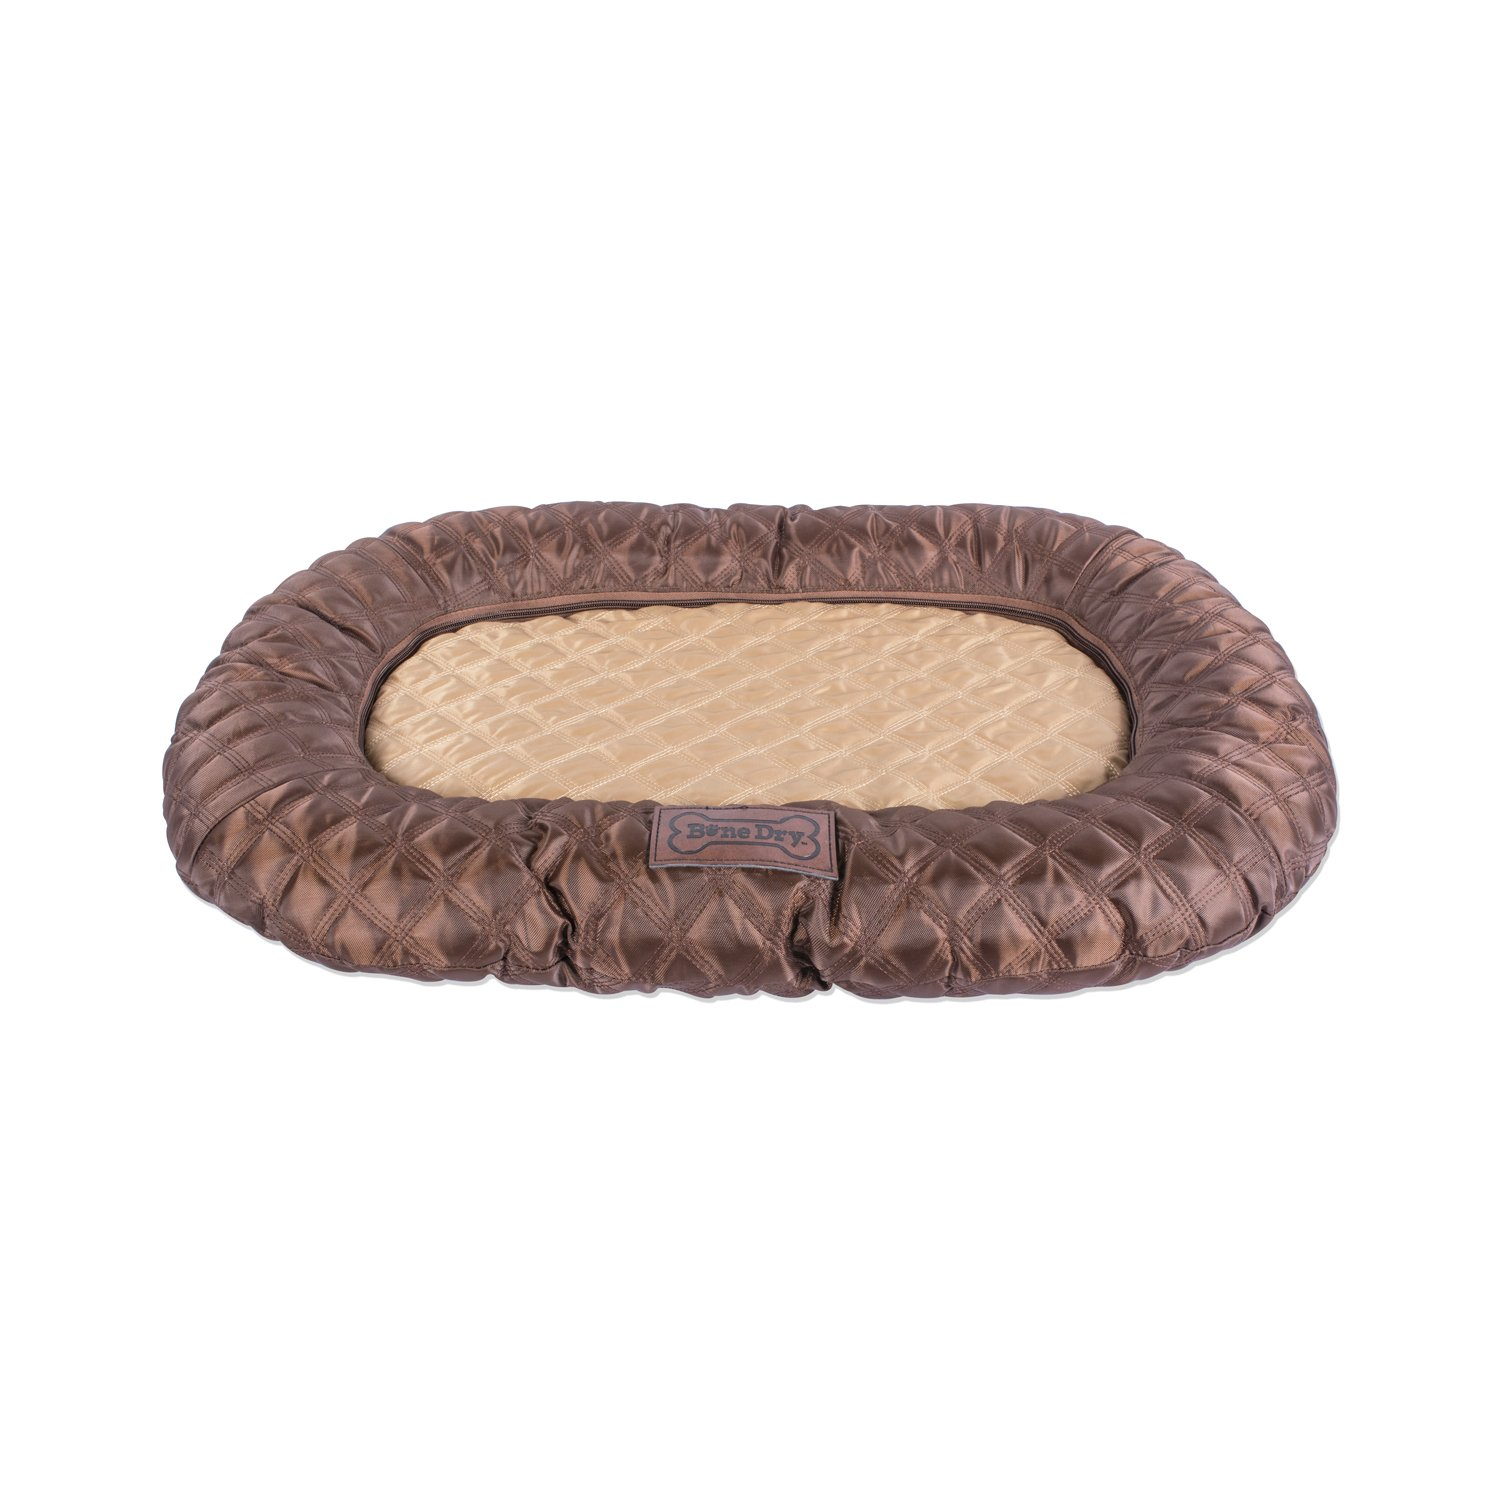 Bone Dry DII Small Oval Quilted Kennel & Crate Padded Pet Mat, 17x22 for Dogs or Cats-Brown